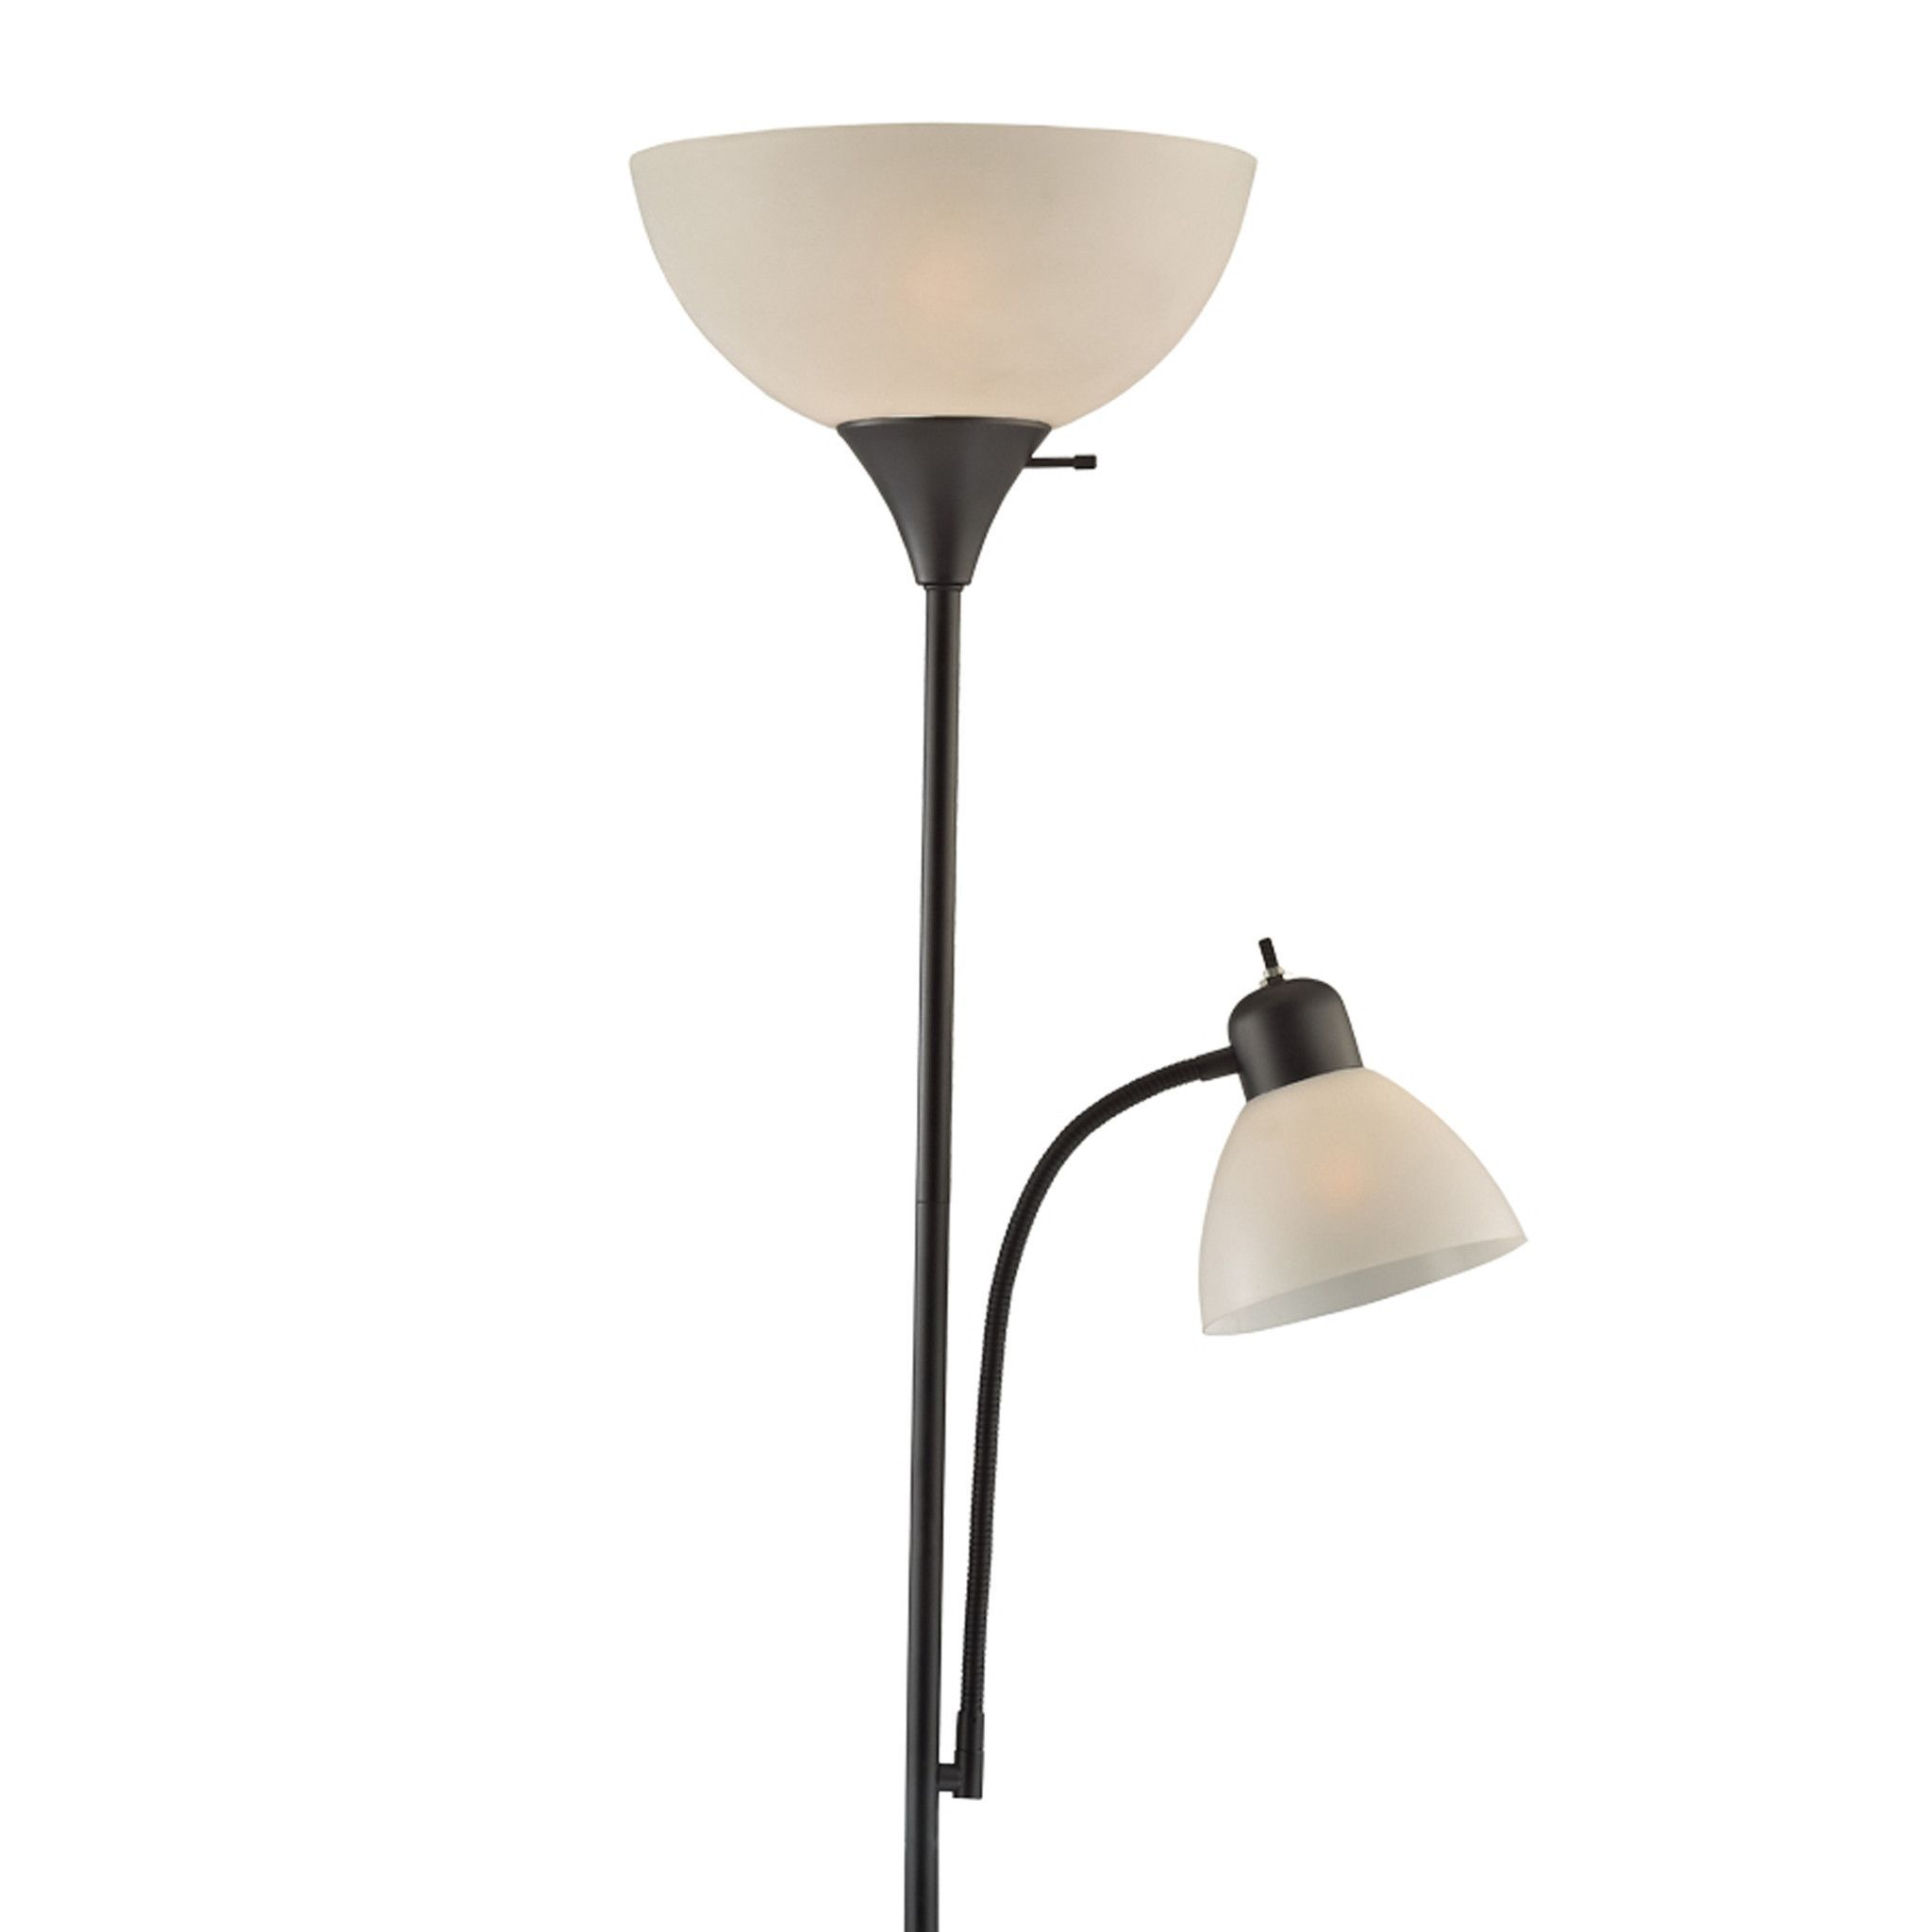 This makes a great gift Shade Replacement... check it out at http://lightaccents.myshopify.com/products/shade-replacement-set-torchiere-side-reading